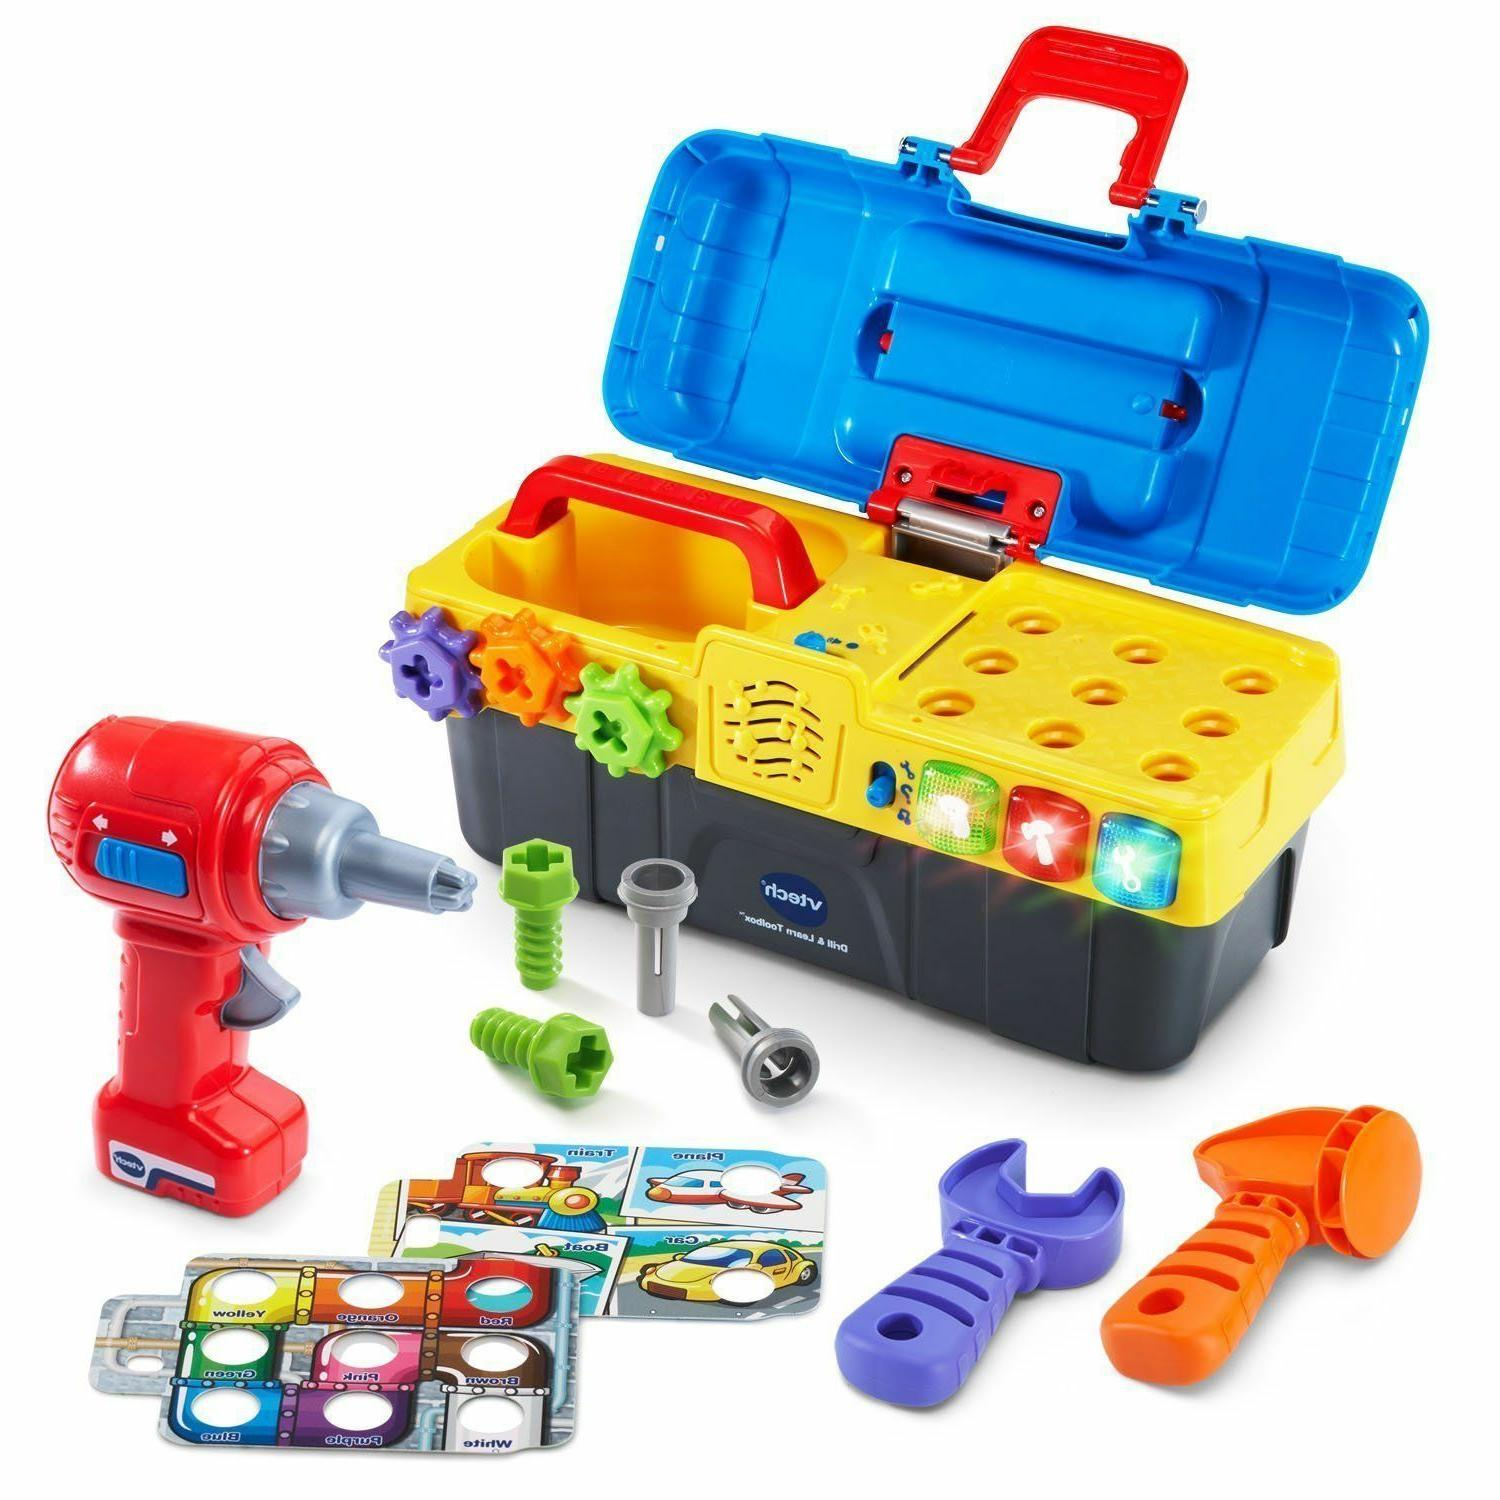 educational toys for boys 2 year olds